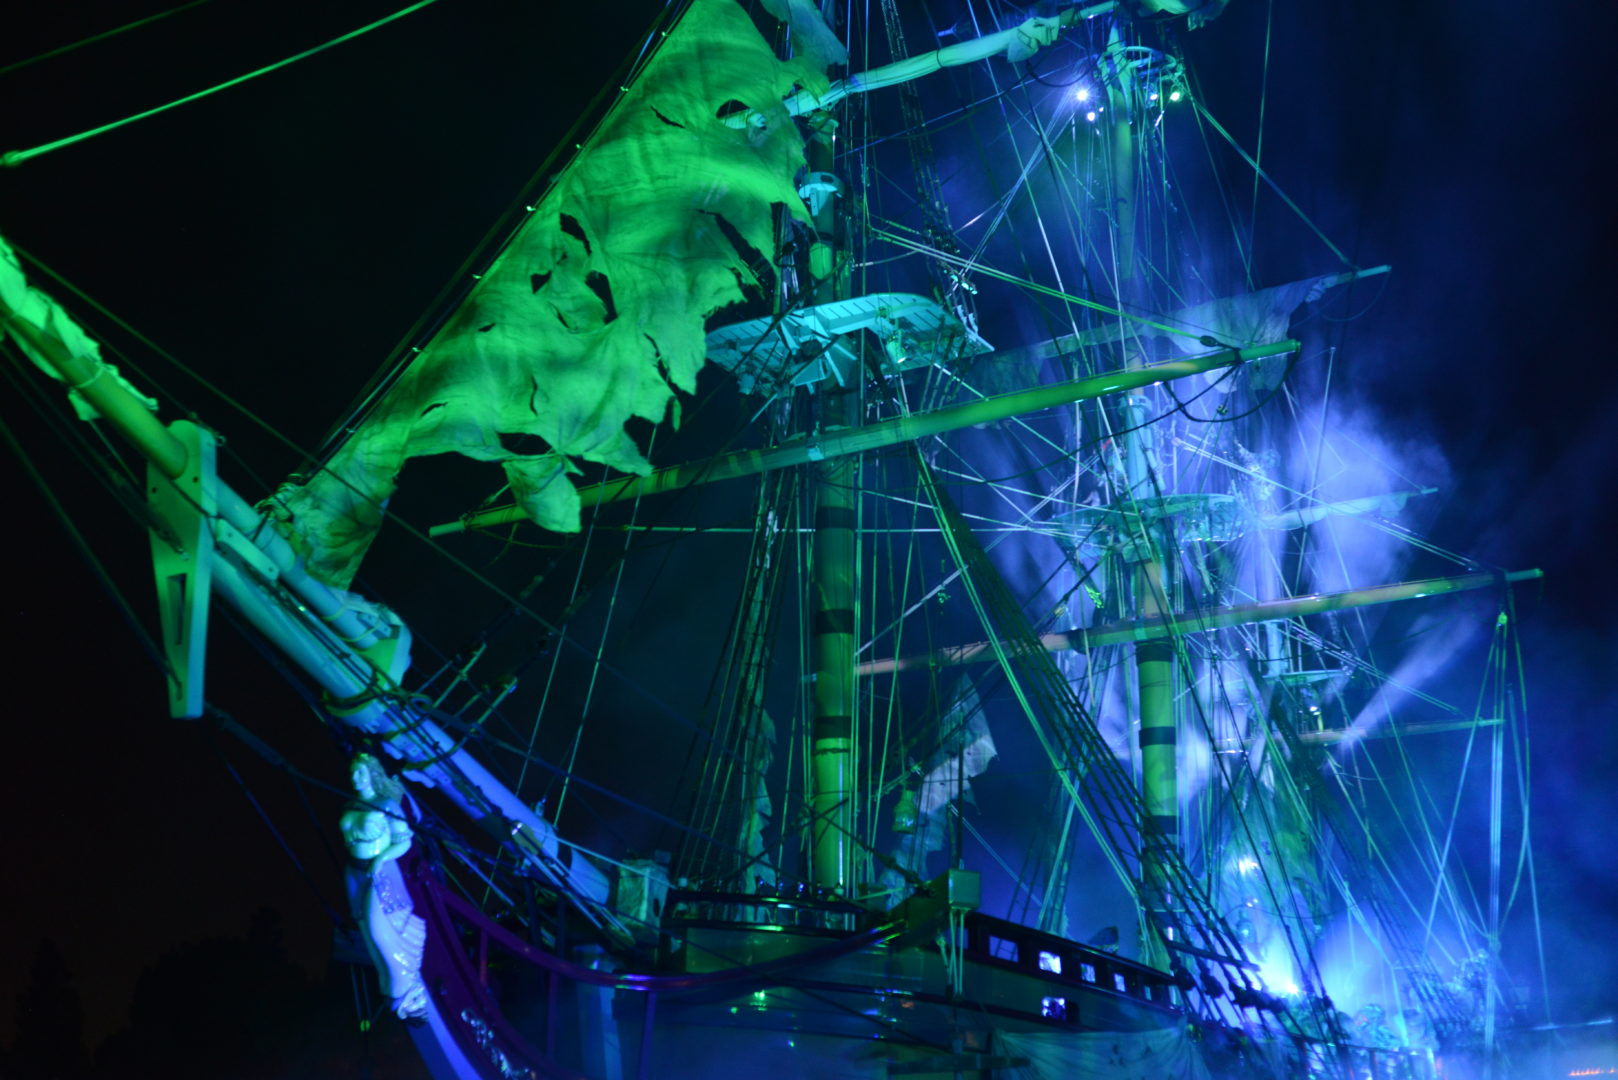 Blue and Green Pirates of the Caribbean Ship at Disneyland's Fantasmic Night Show